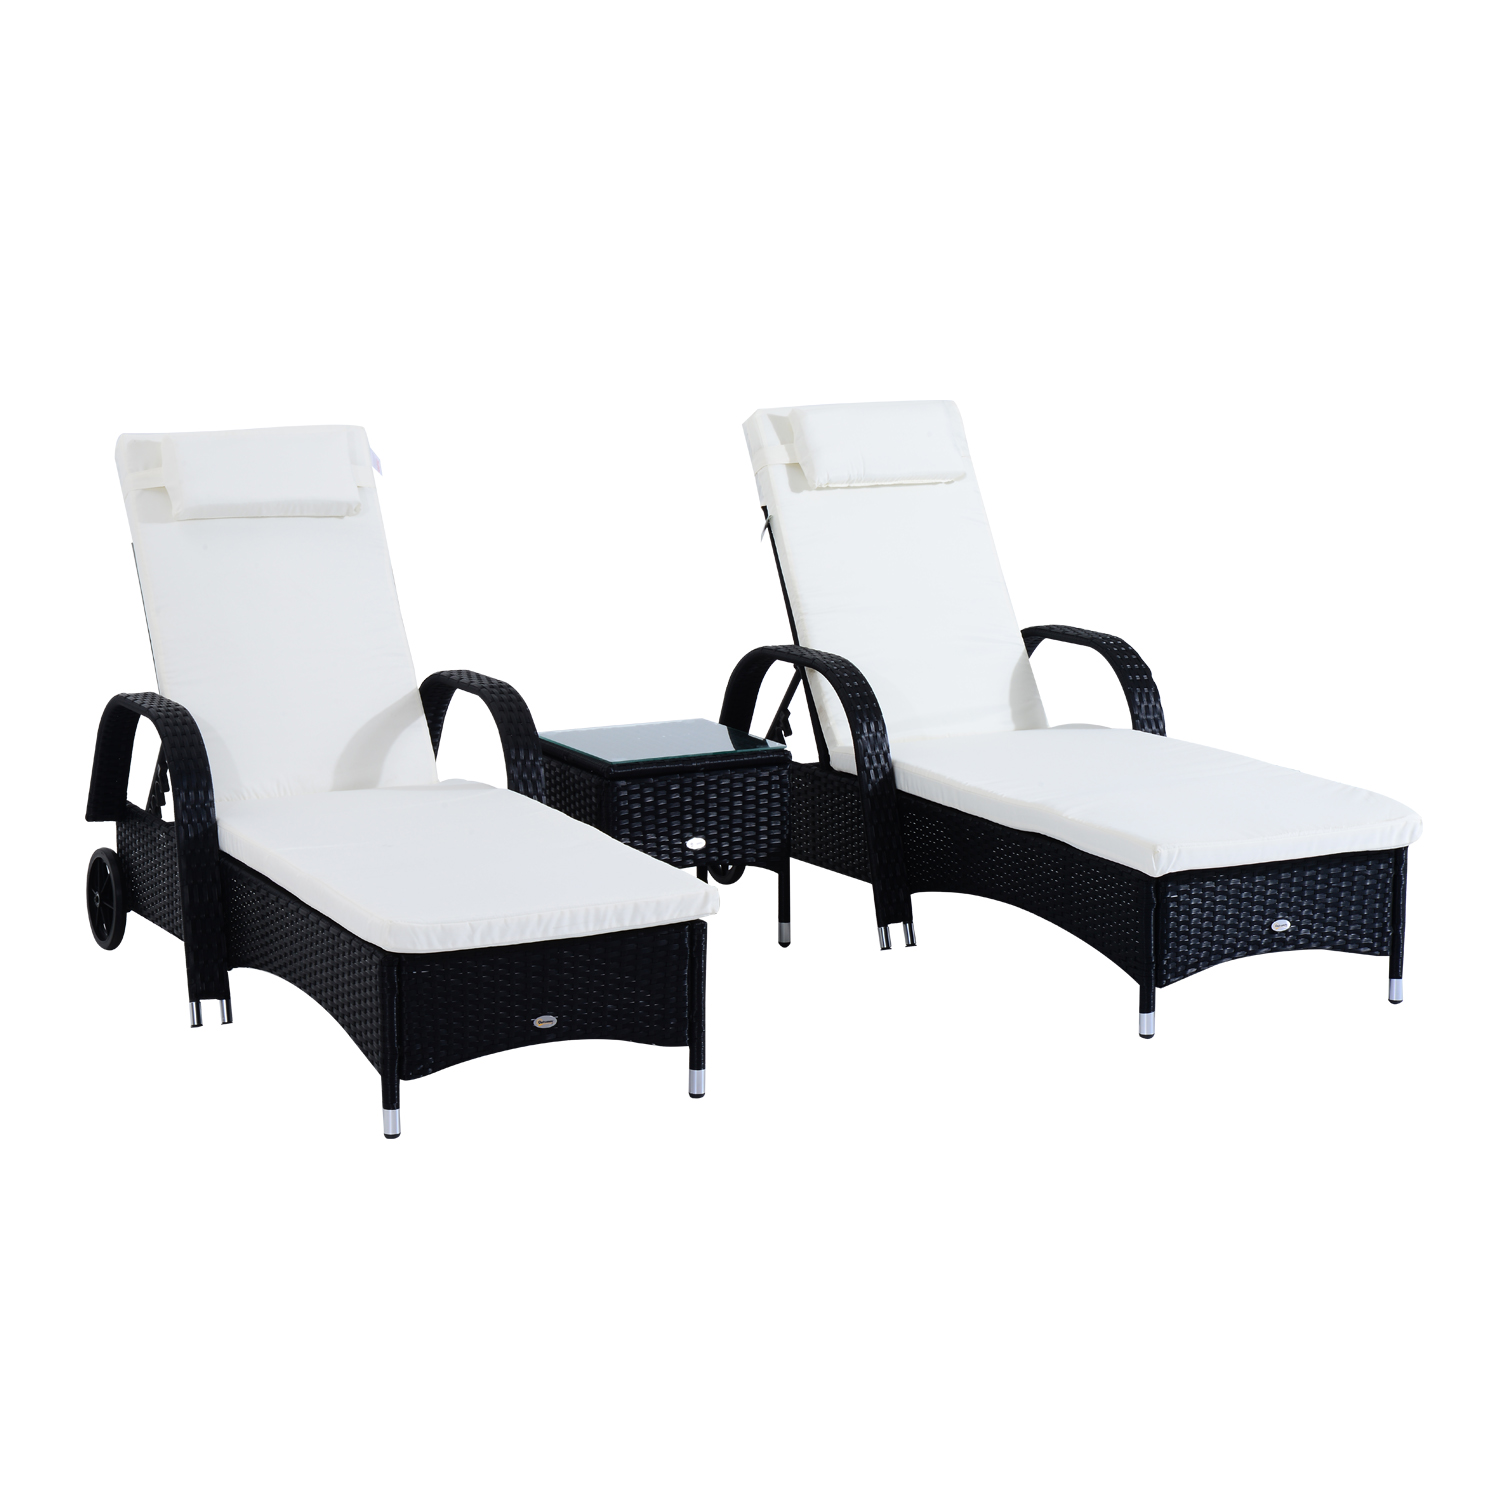 Outsunny 3 Piece Rattan Wicker Adjustable Chaise Lounge Chair With Wheels  Set  Black/White   Black